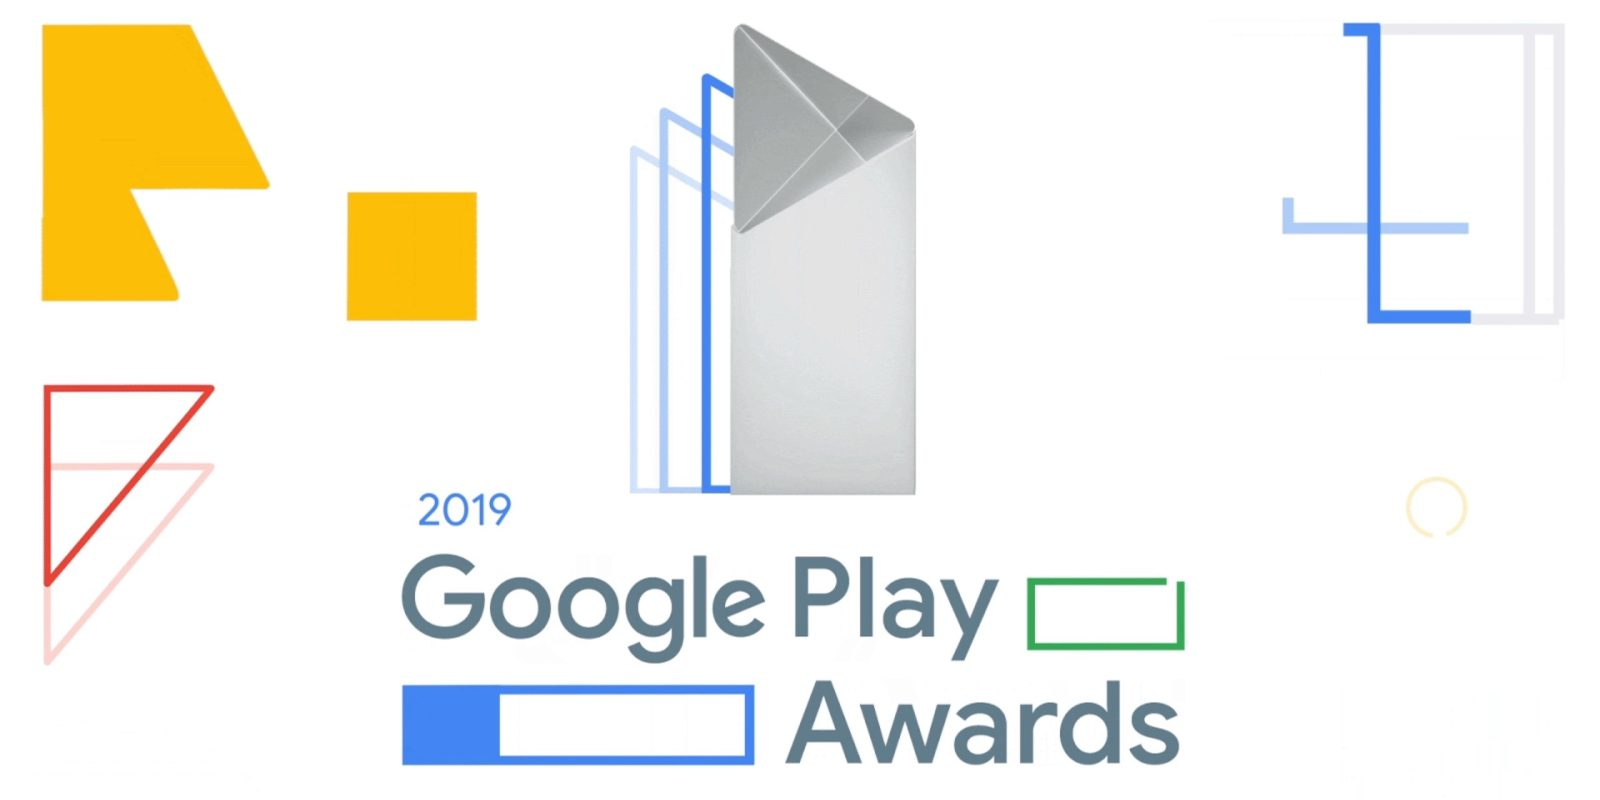 2019 Google Play Award winners highlight best Android apps